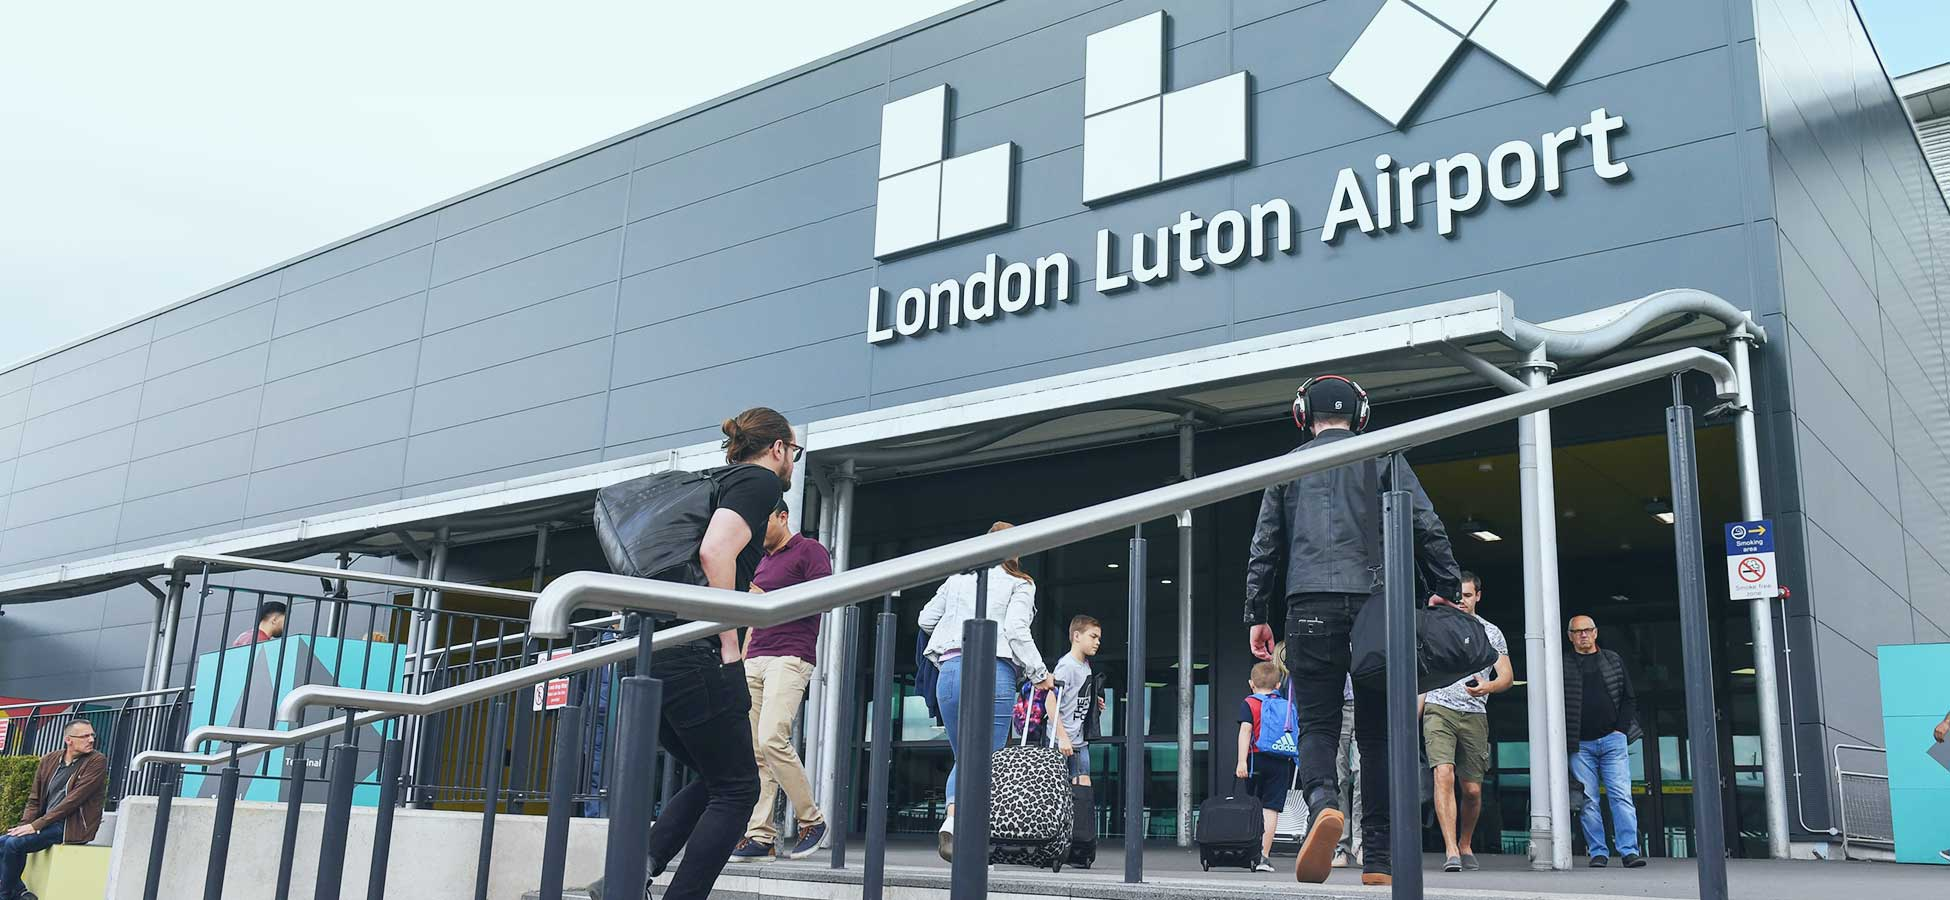 London Luton Airport selects Veovo Revenue Management to automate billing and fuel growth